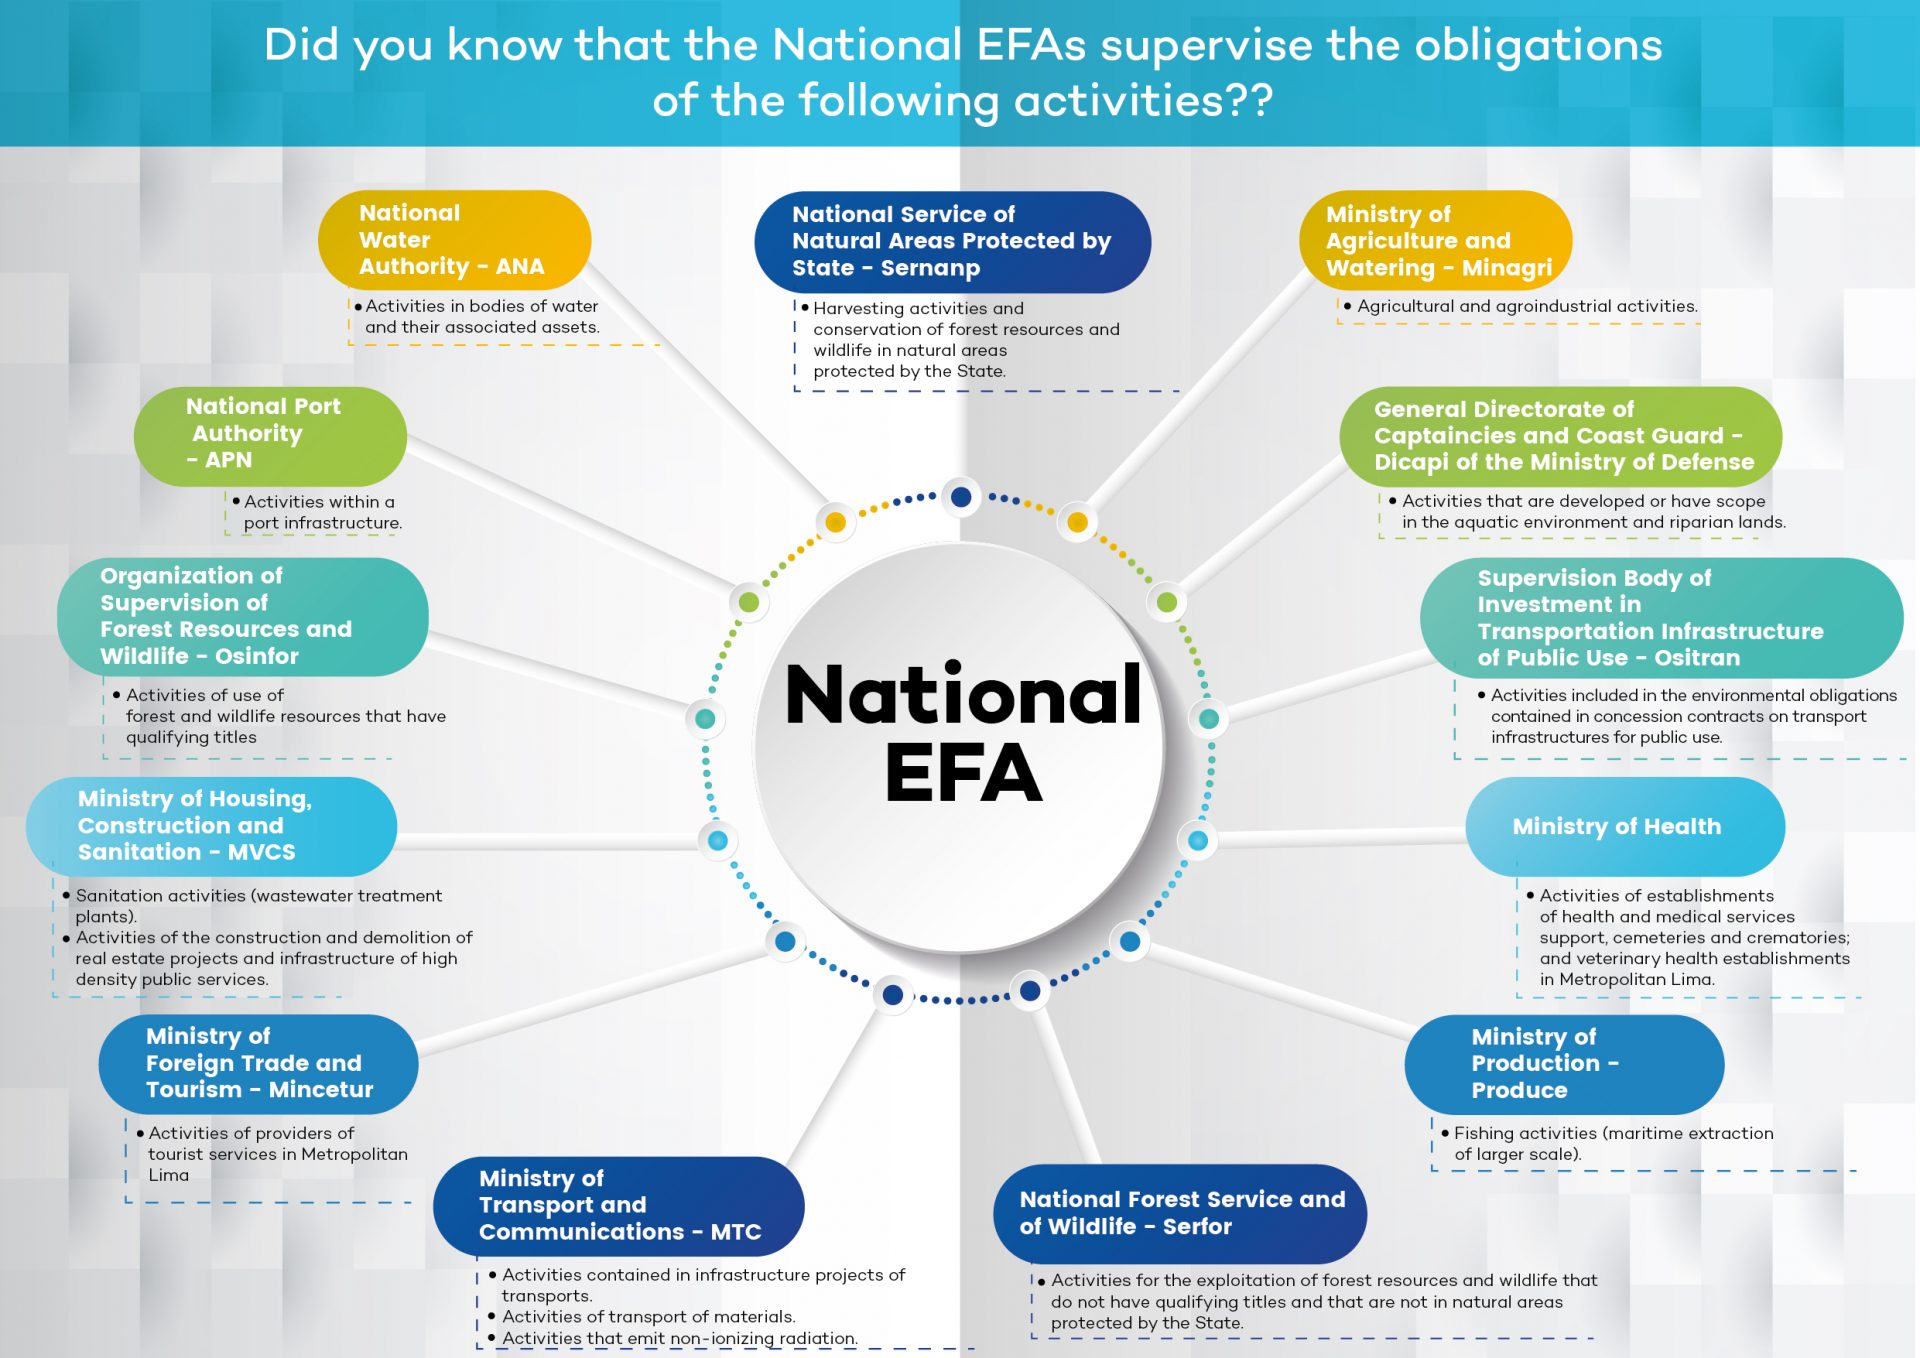 National EFA